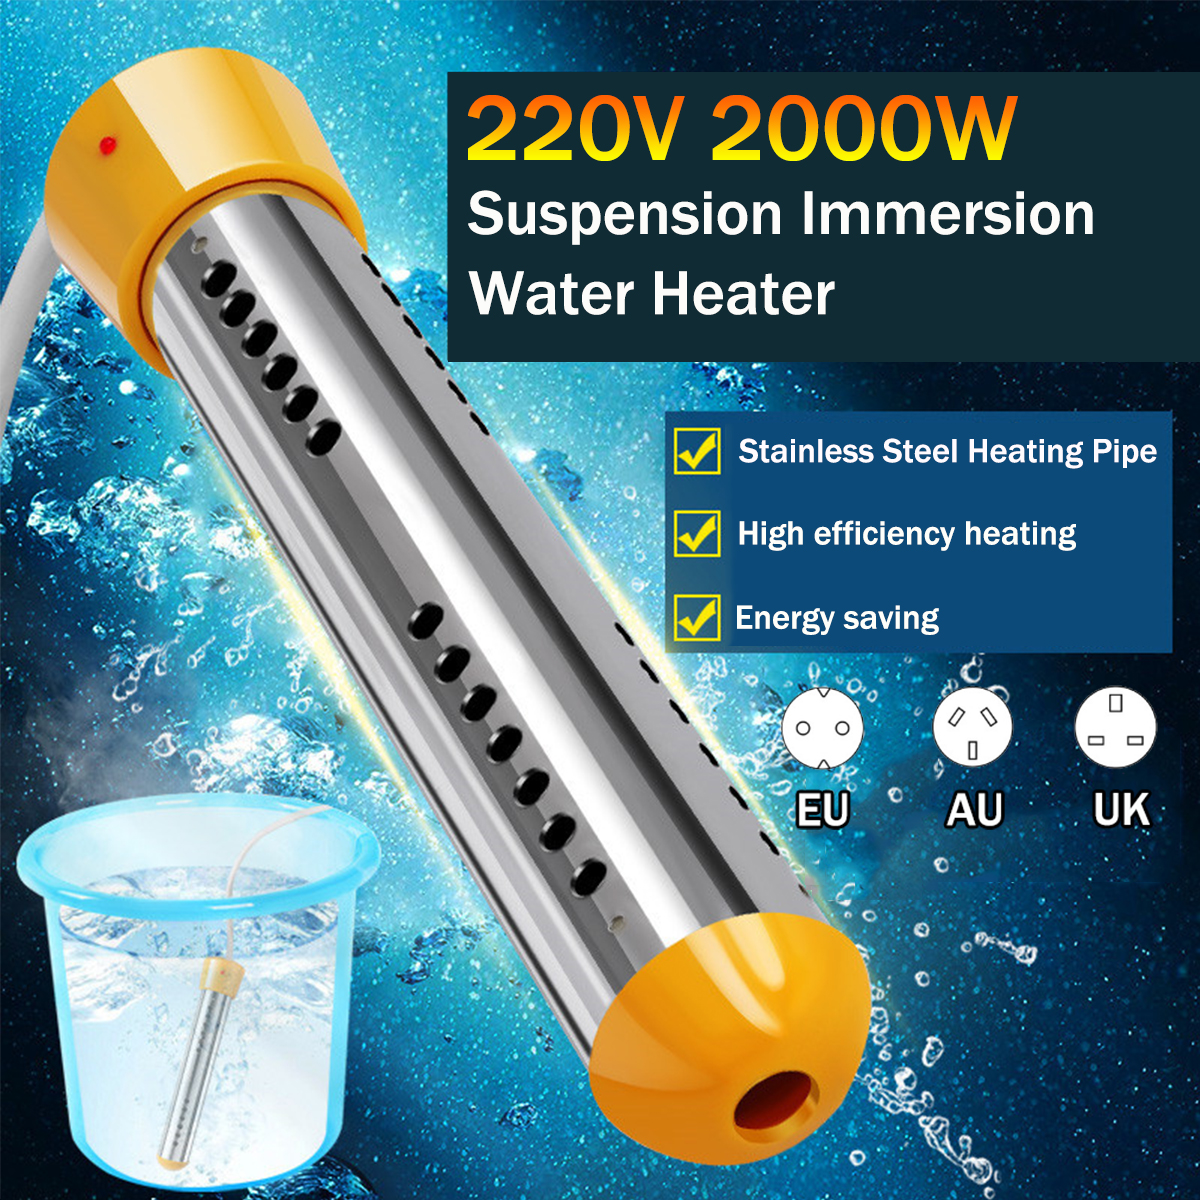 2000W Floating Electric Heater Boiler Water Heating Element Portable Immersion Suspension Bathroom Swimming Pool AU/EU/UK Plug(China)